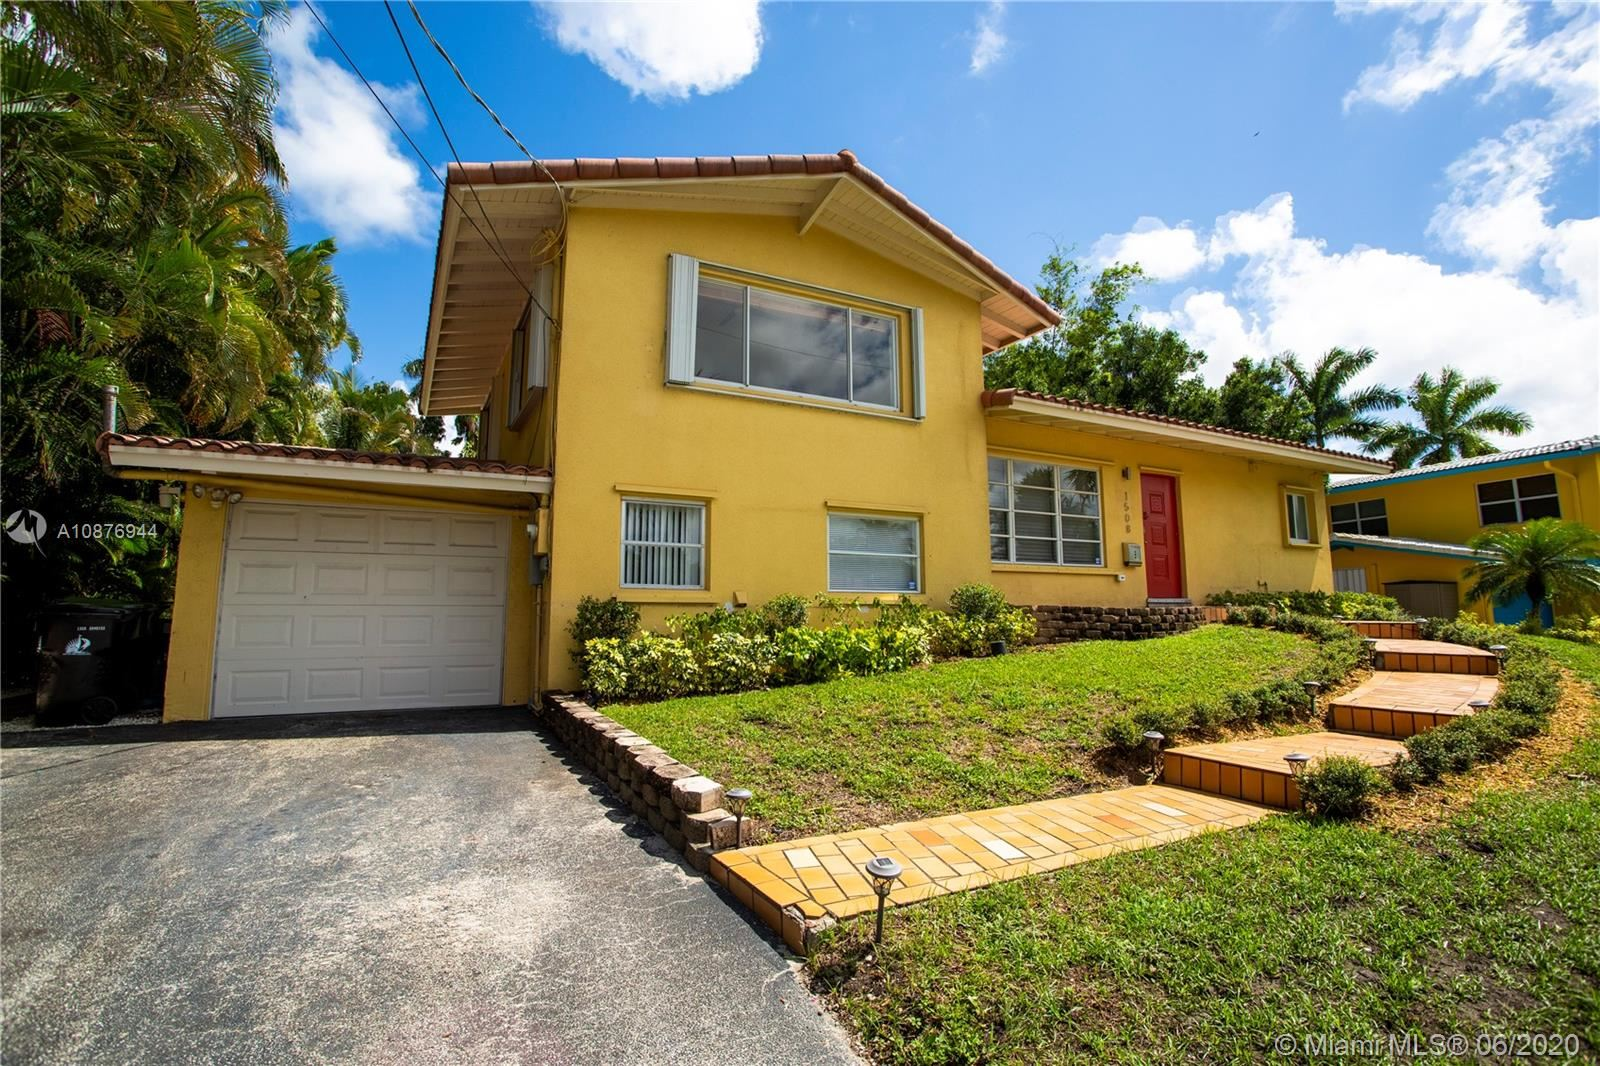 1508 SW 5th Ct, Fort Lauderdale, FL 33312 - #: A10876944